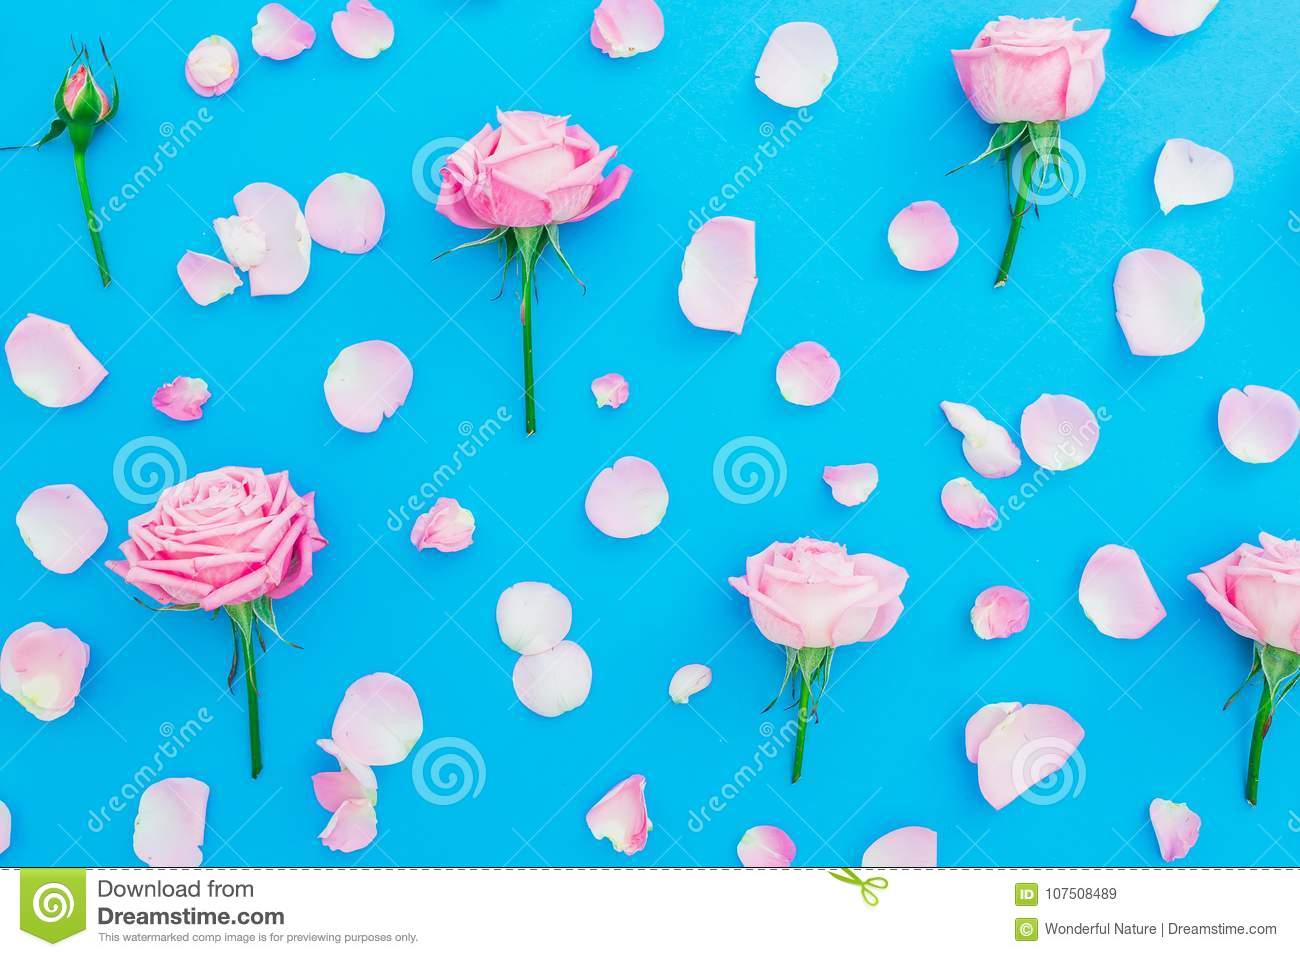 d4875c44fe05a Floral pattern with pink roses buds and petals on blue background. Flat  lay